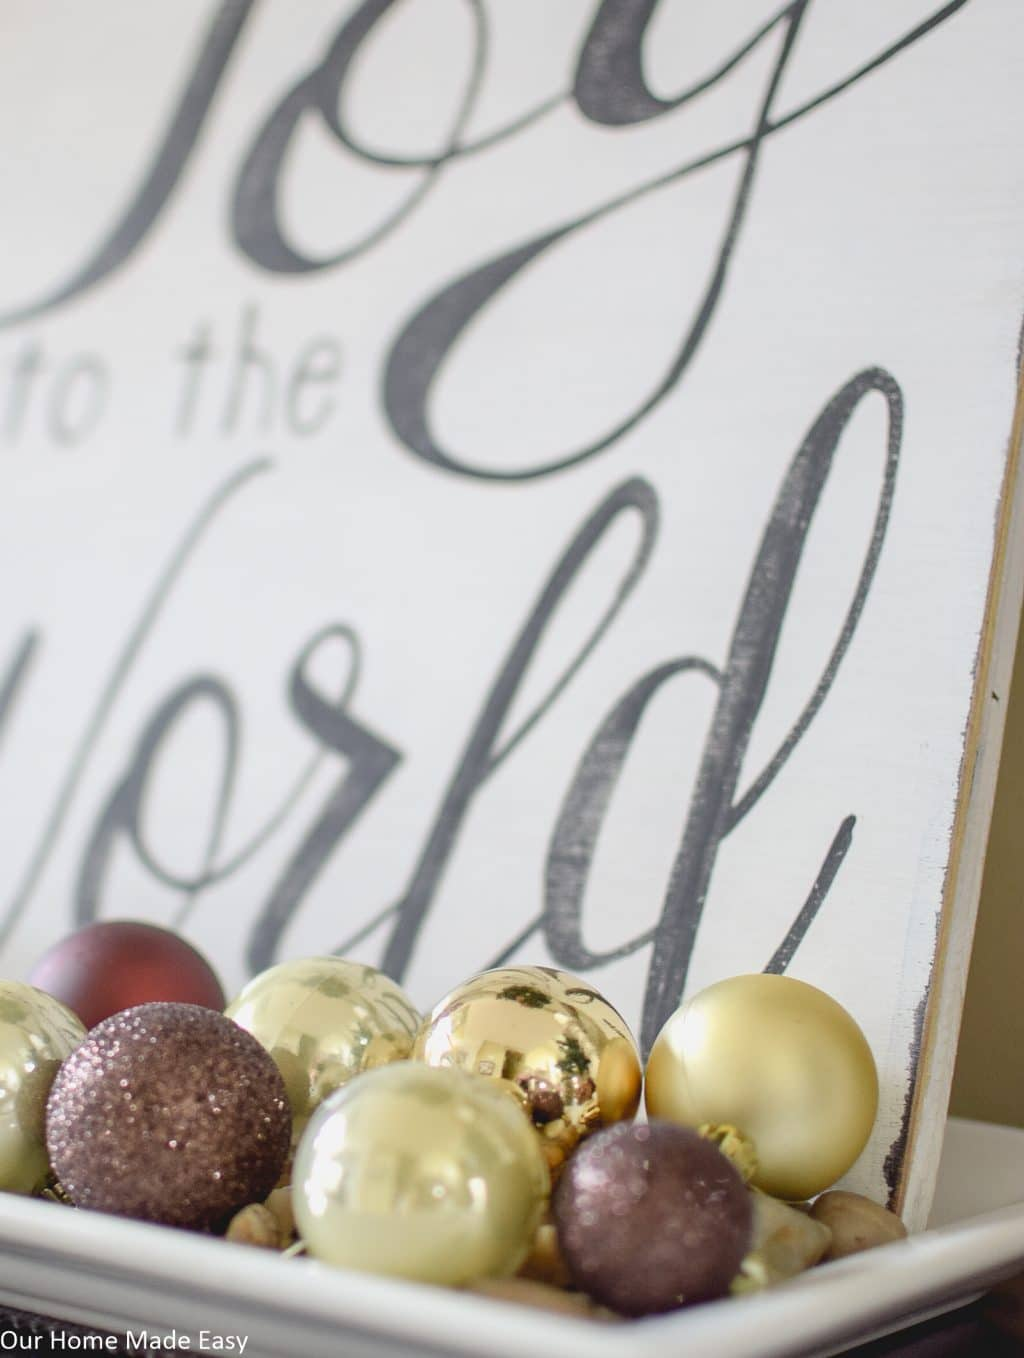 See the entire foyer decorated for Christmas!